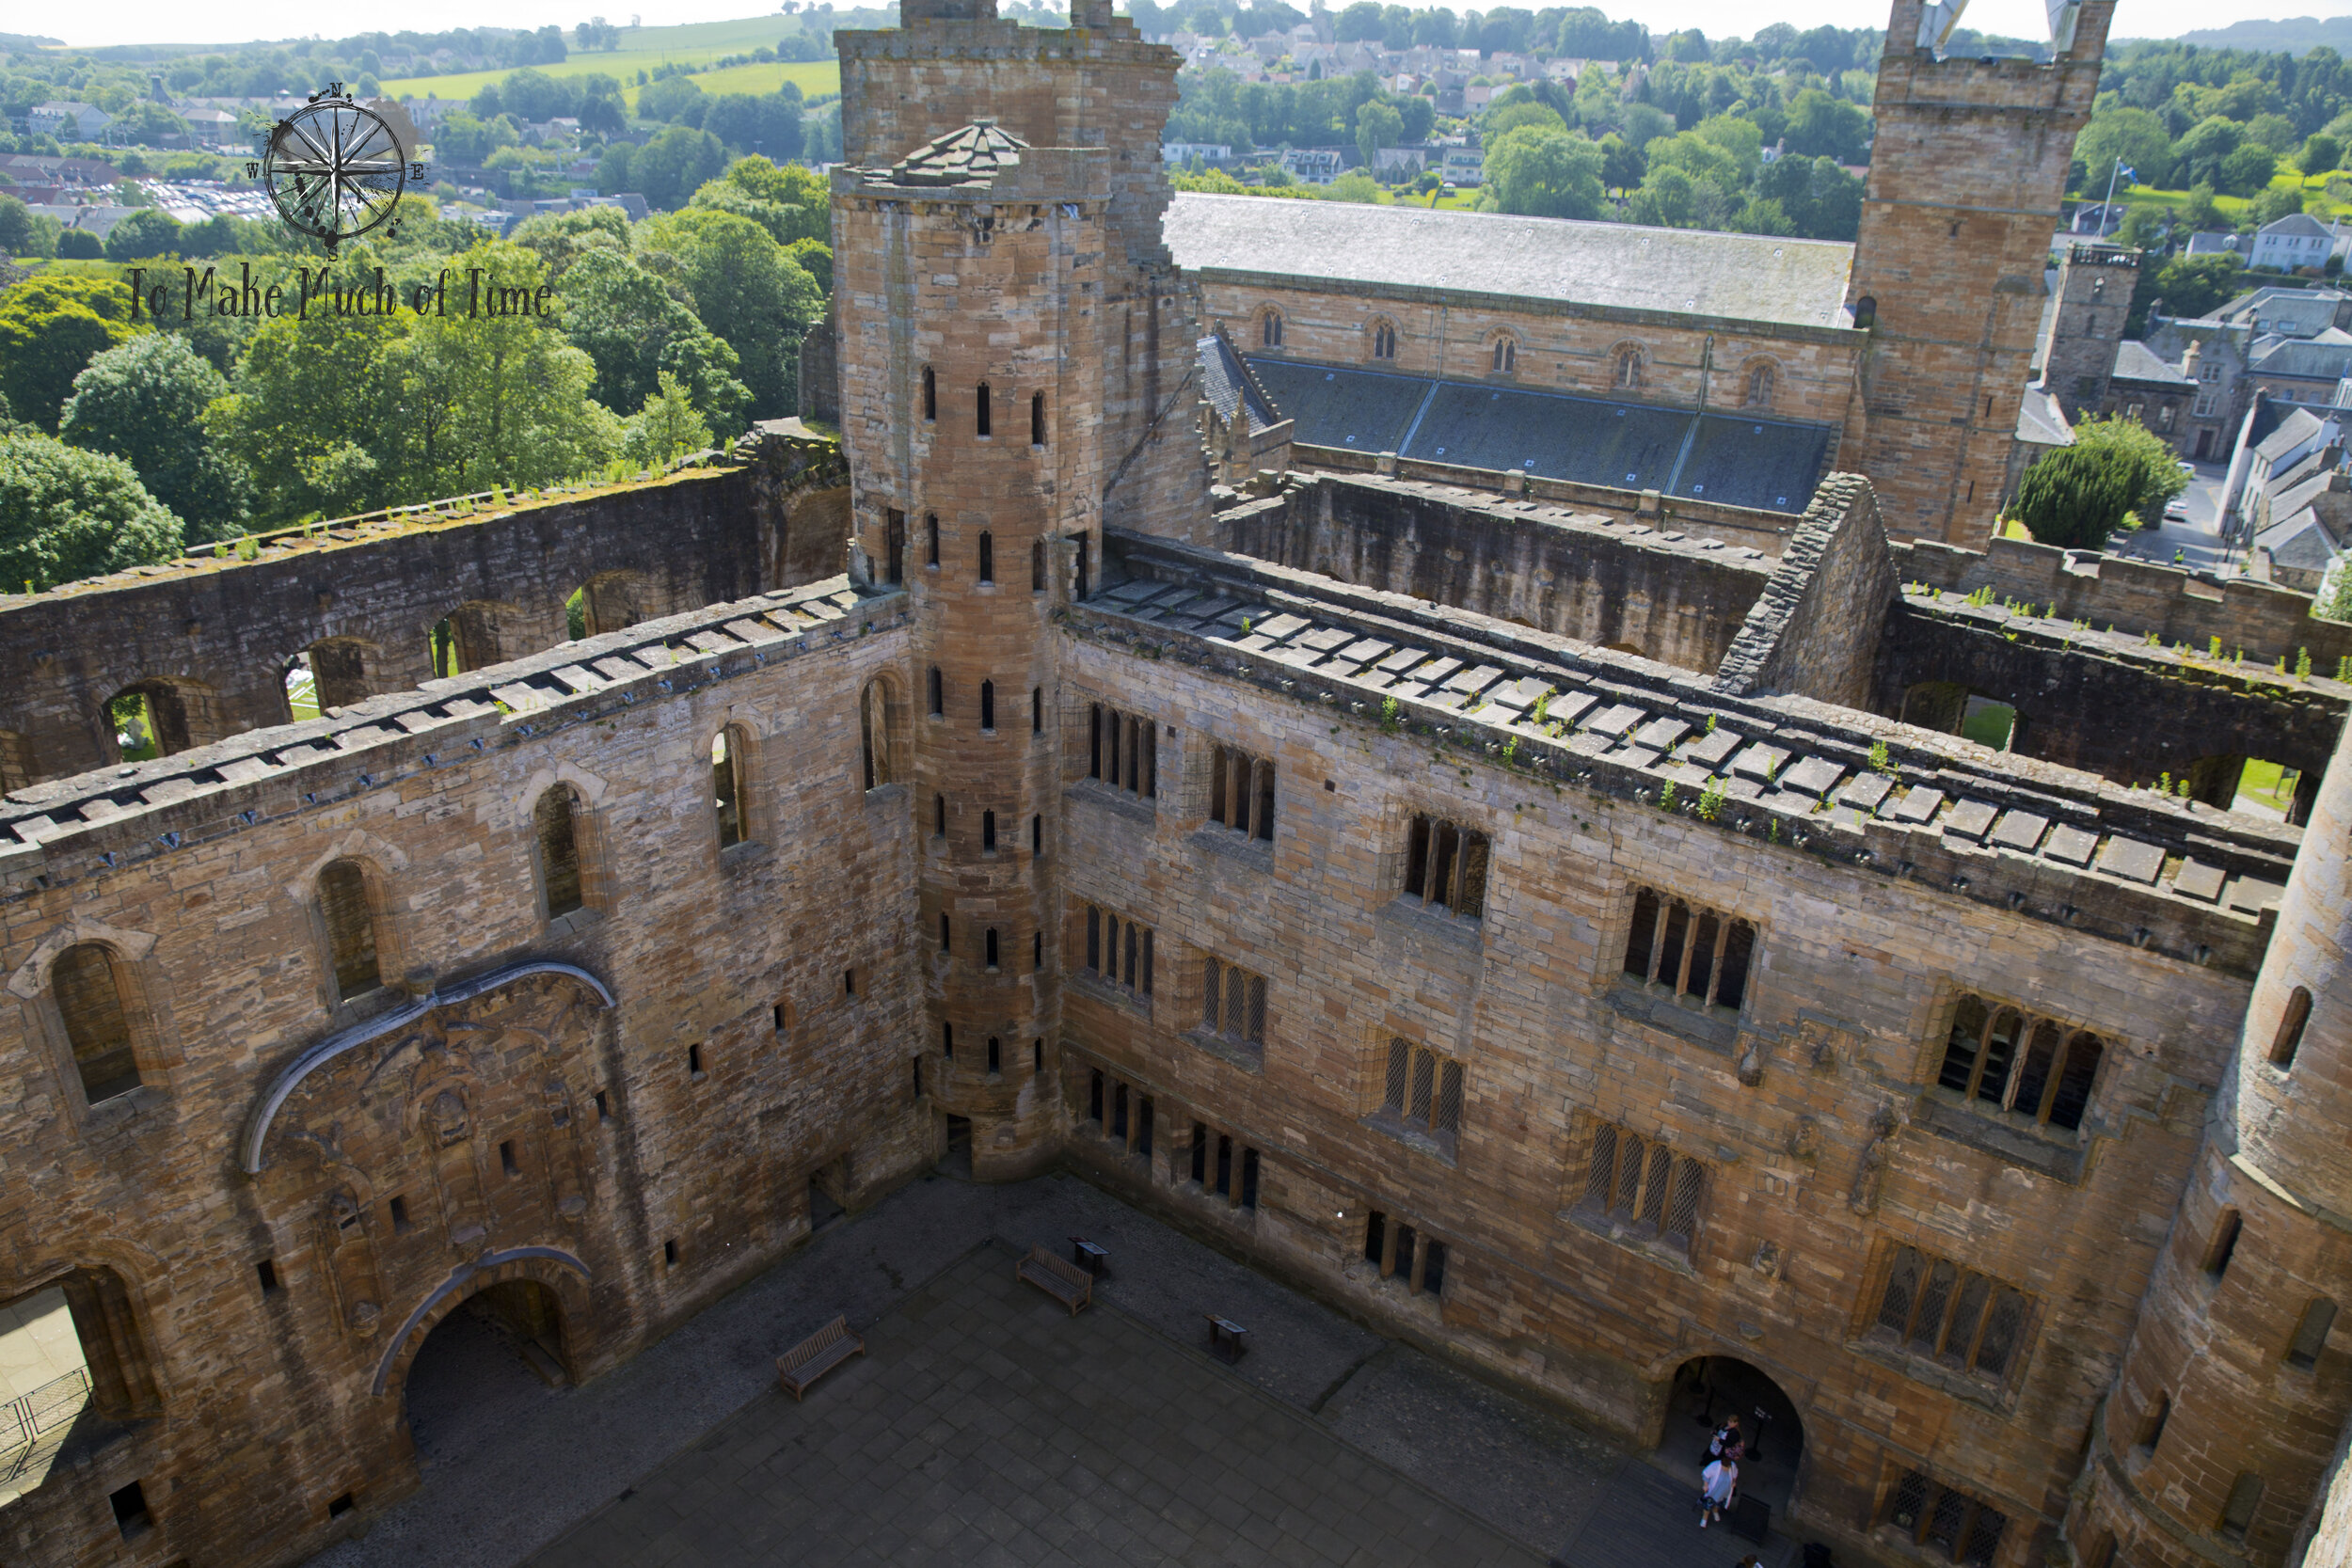 Take your time as you walk through the ruins of Linlithgow Palace and try to imagine what this estate must have looked like before a fire gutted the interior.